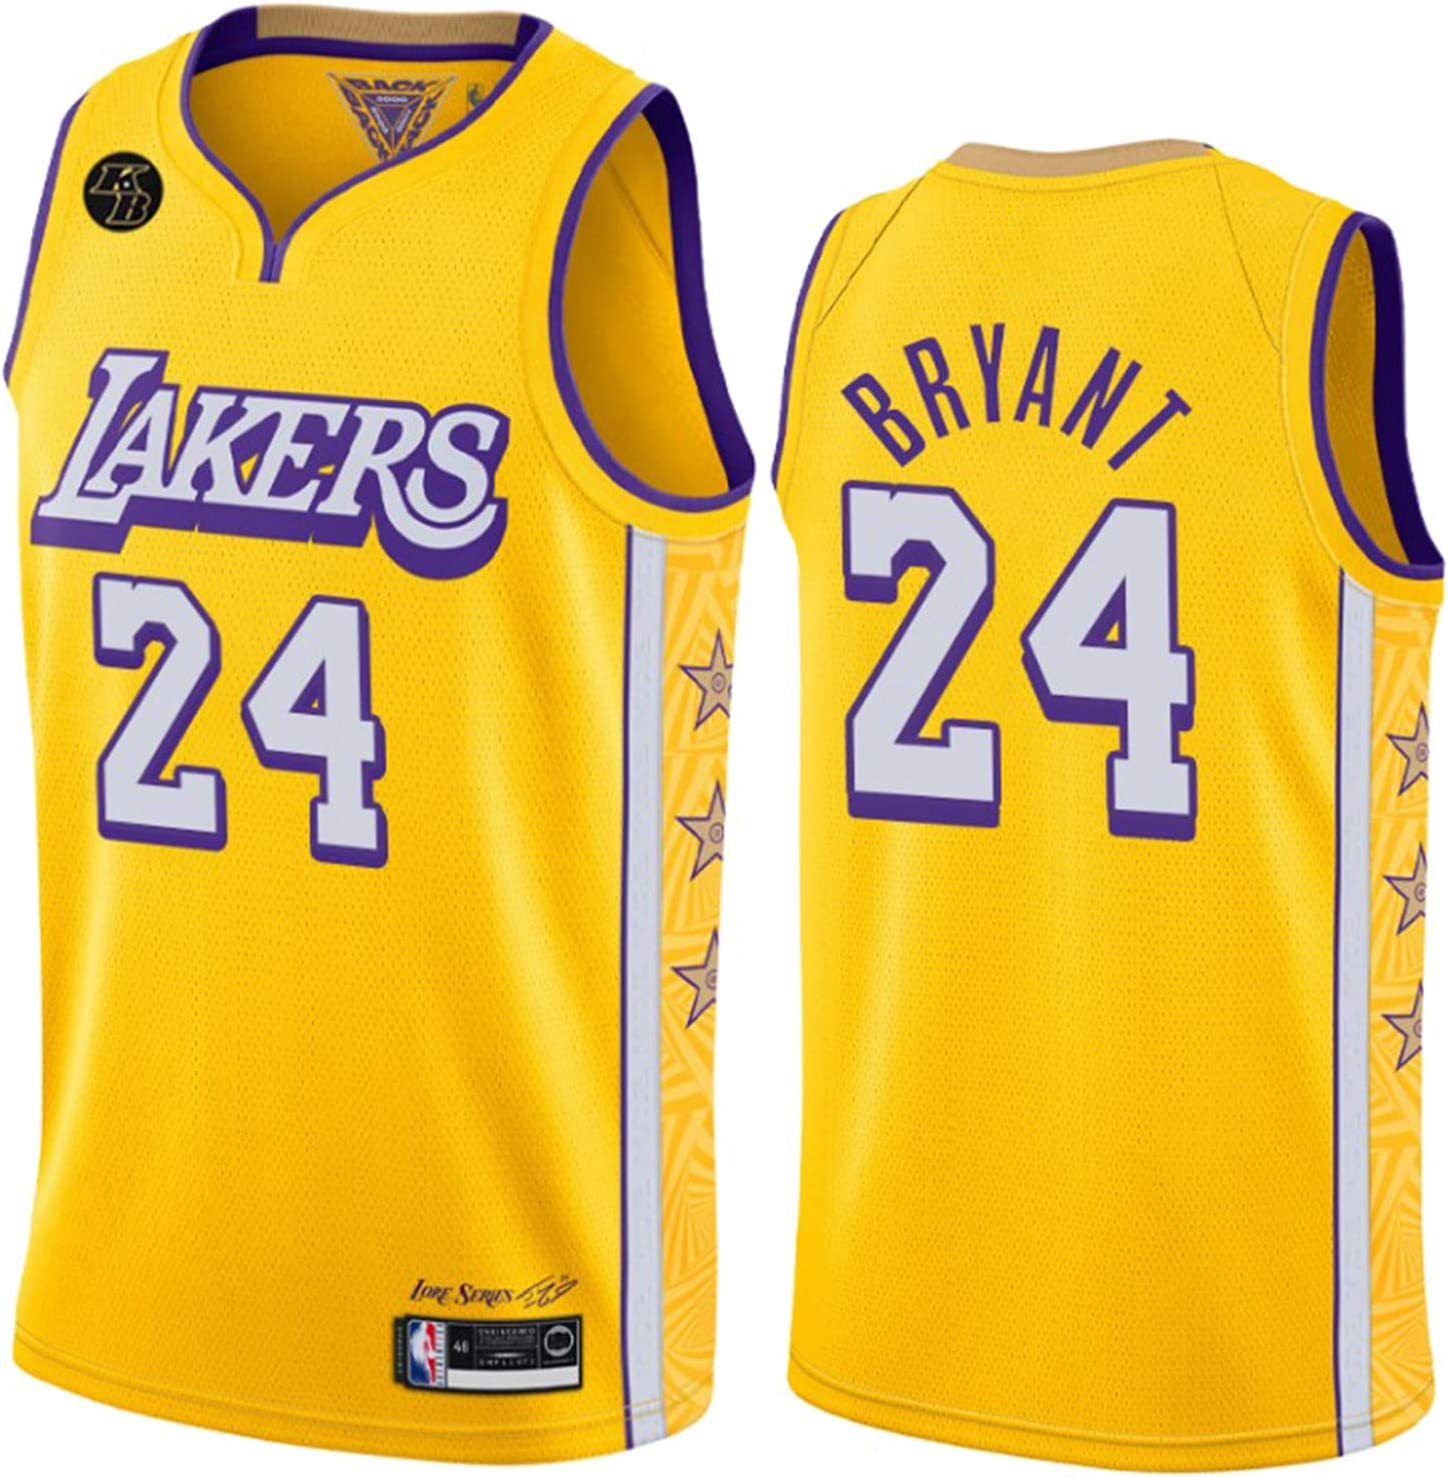 Lakers 2021Basketball Jerseys for Men,Kobe James Davis Sleeveless City Edition Shirts with Champion Cup and KB Logo(S-XXL)